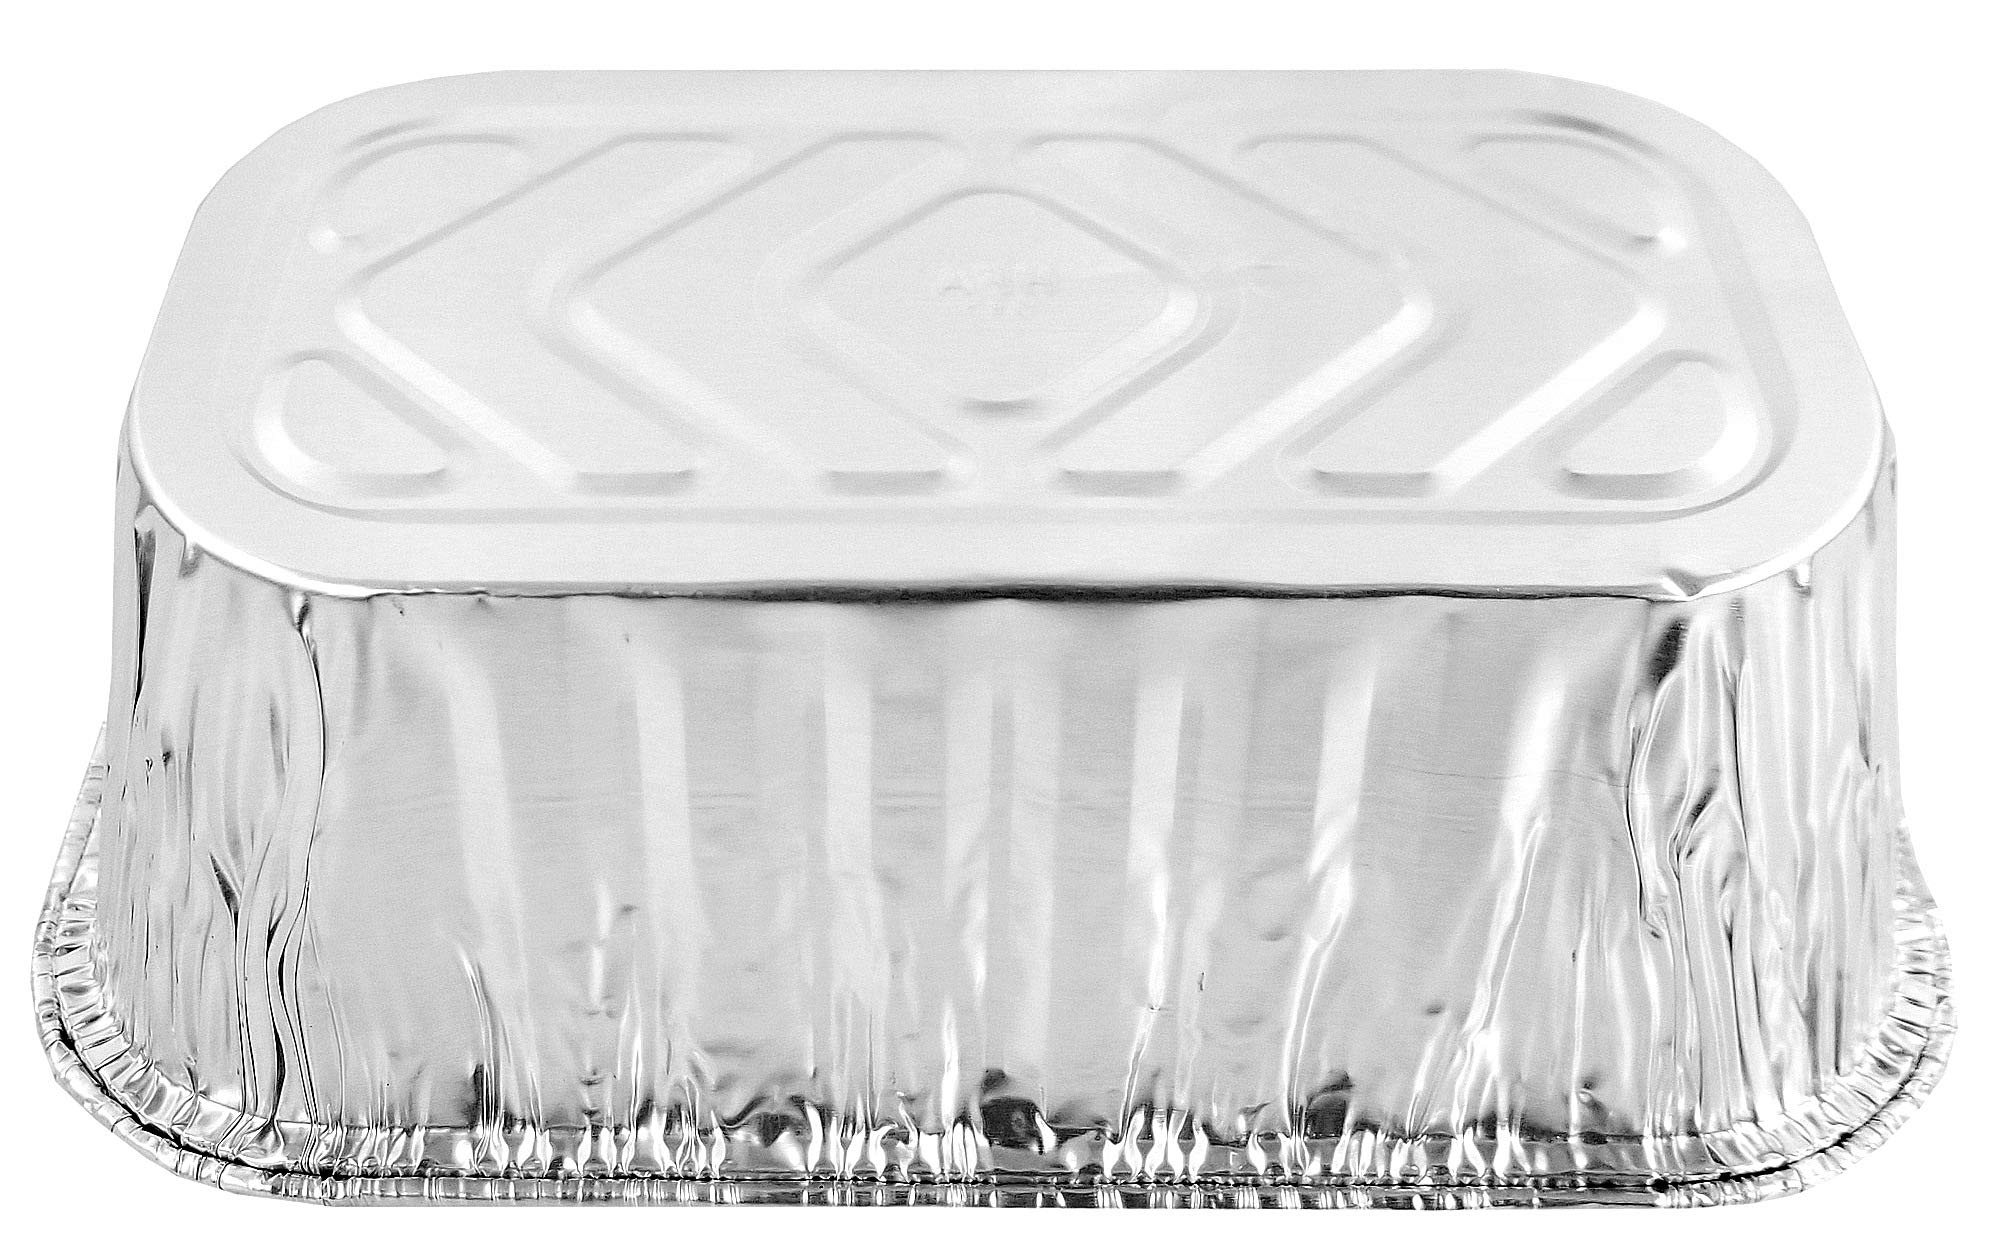 Pactogo Disposable 1 lb. Aluminum Foil Mini Loaf Pans with Clear Low Dome Lids (Pack of 400 Sets) by PACTOGO (Image #9)